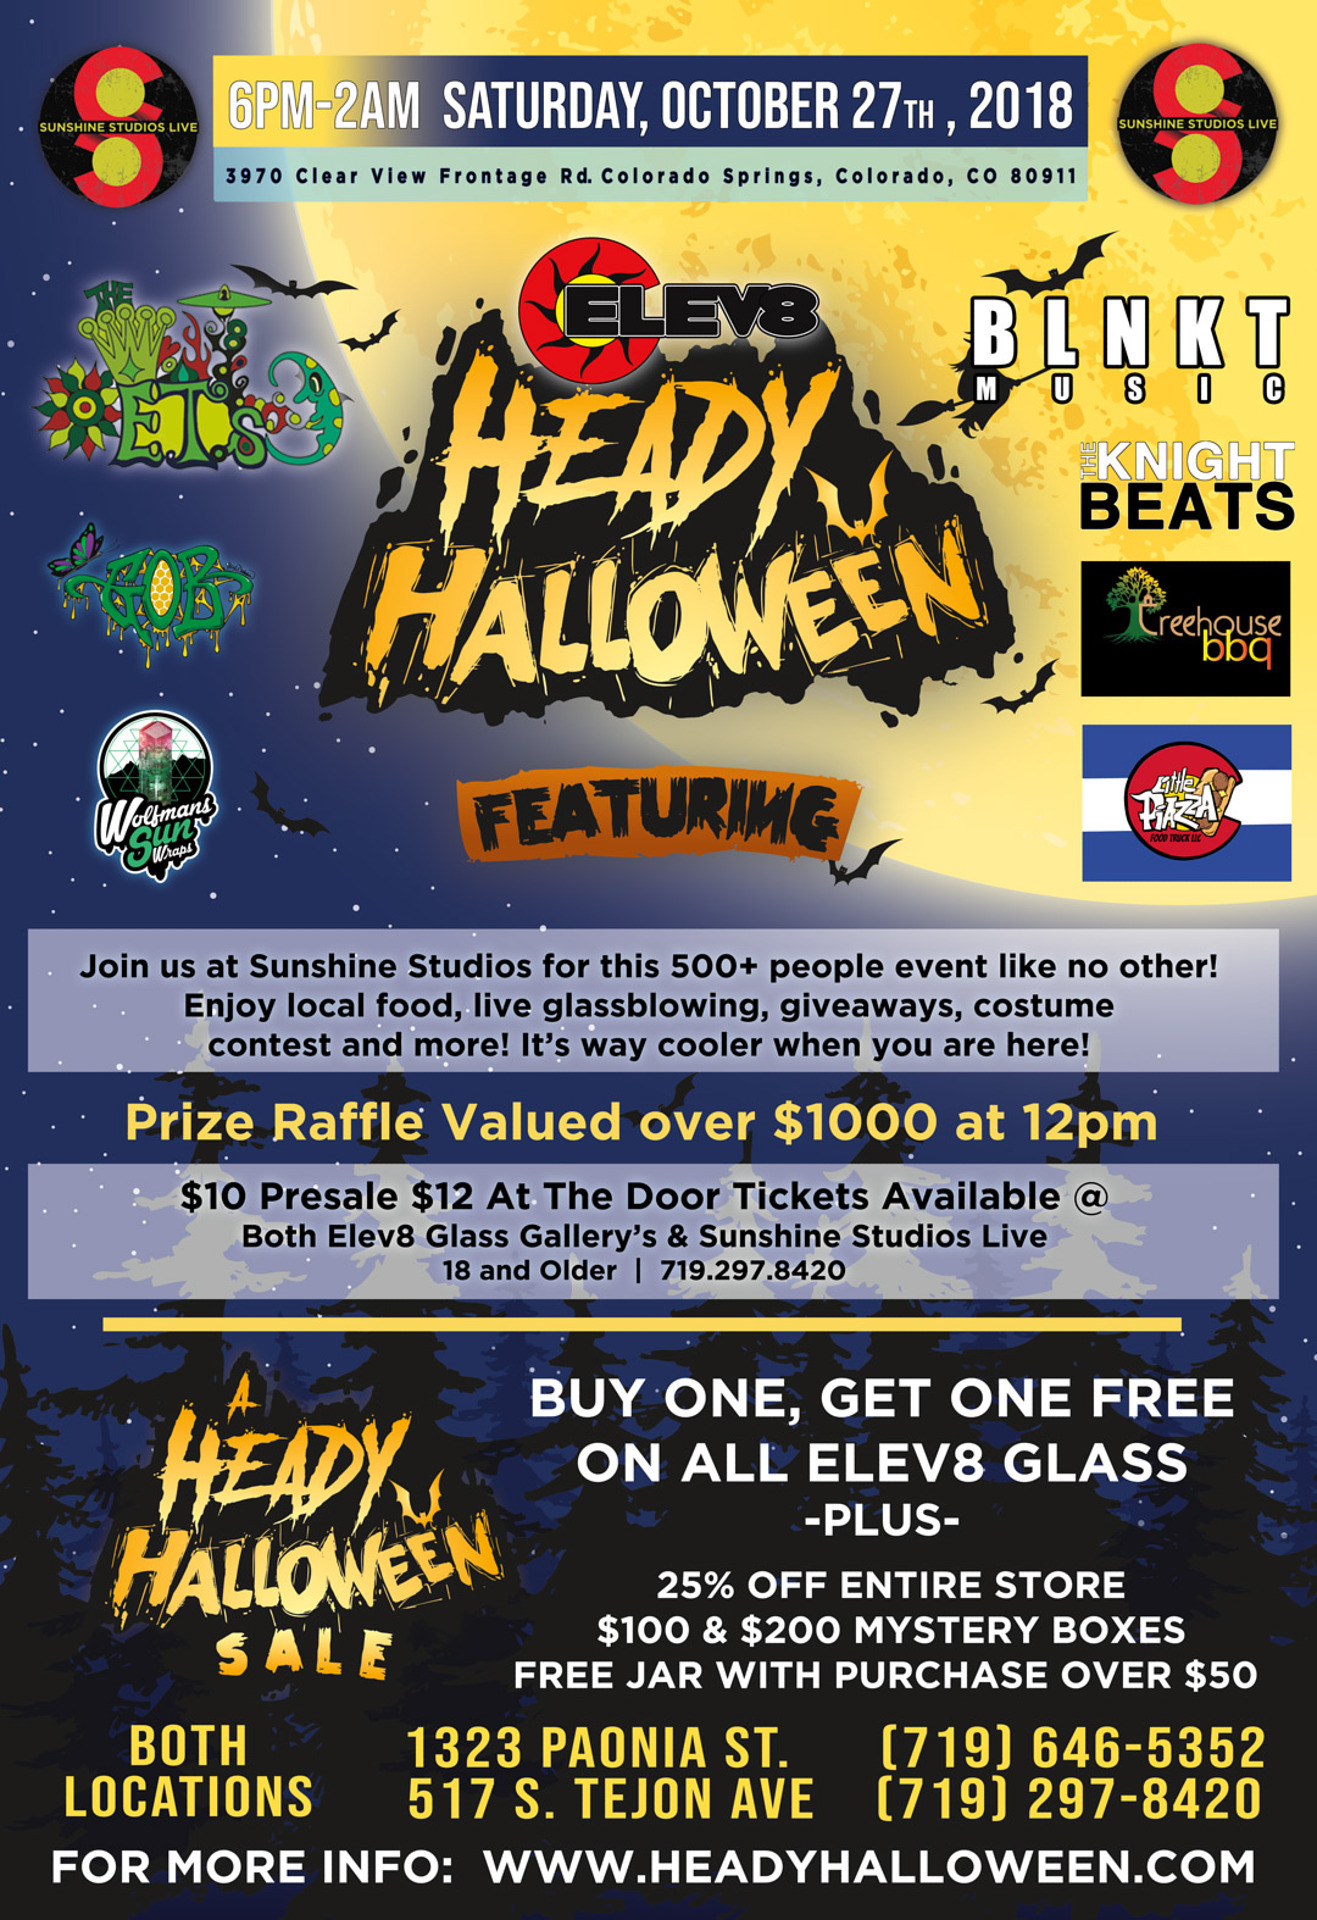 heady-halloween-2018-poster-full.jpg